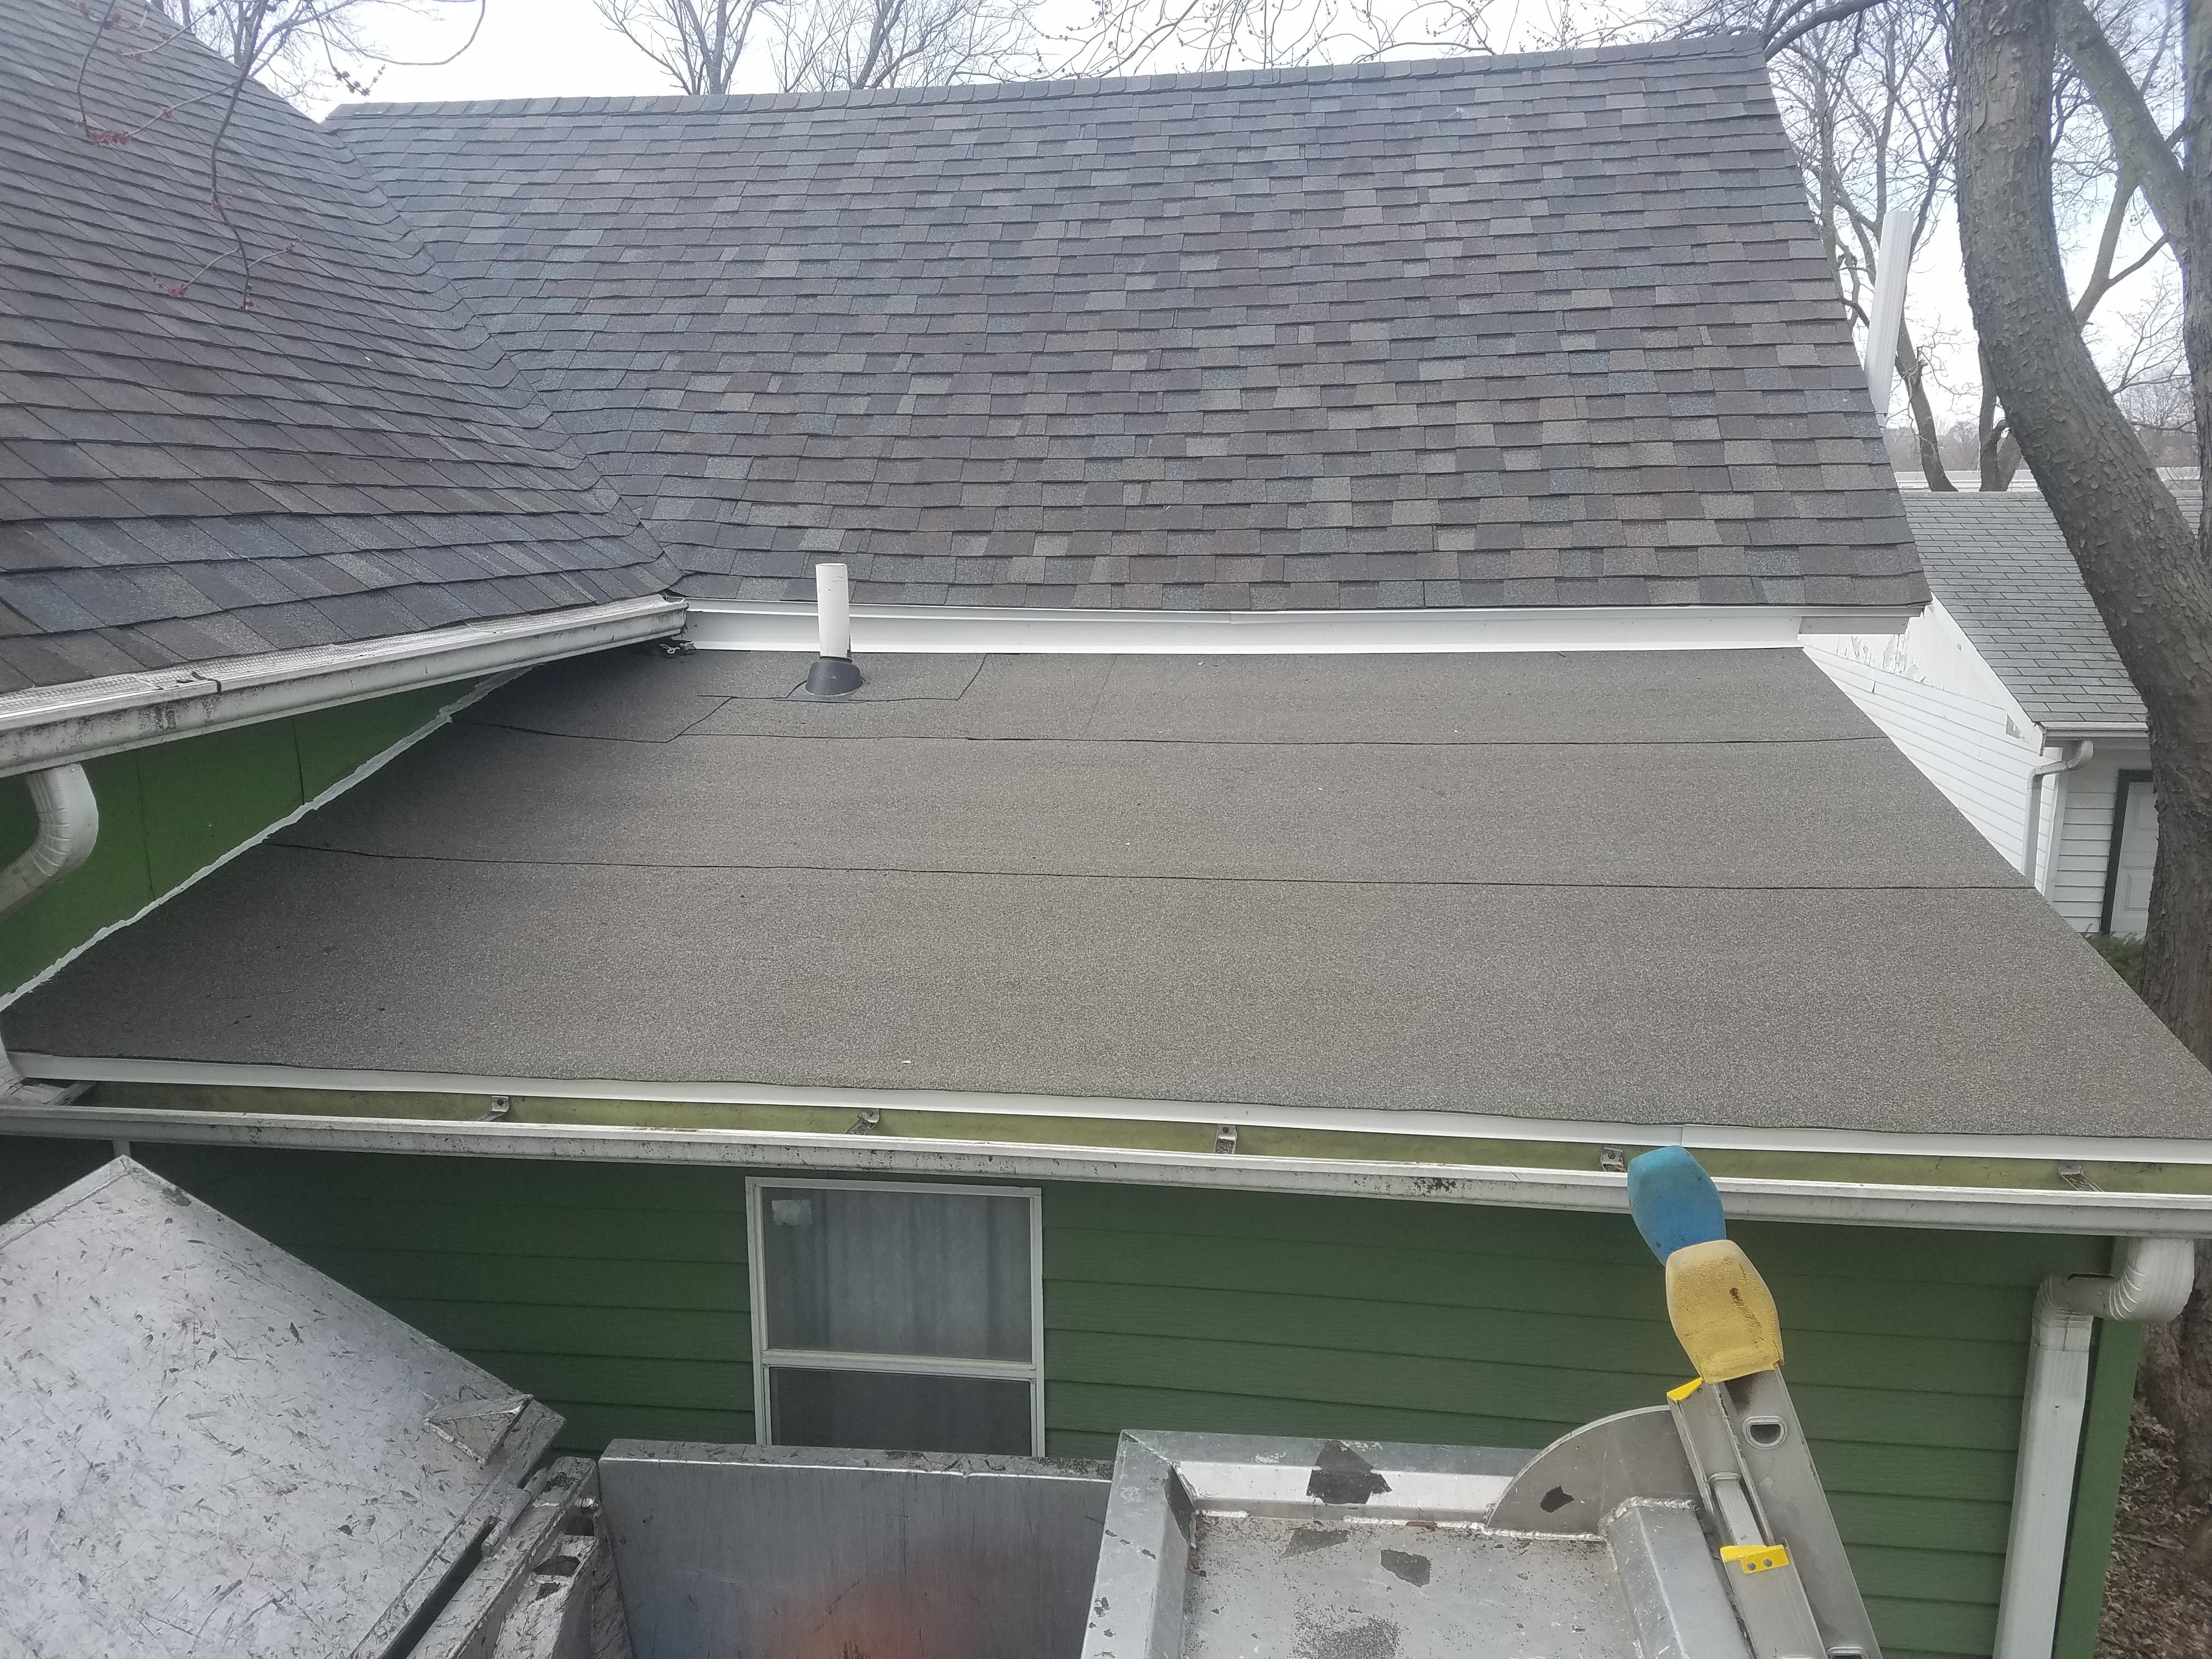 Flintlastic Low Slope Roof Replacement In Normal Il Carlson Exteriors Inc